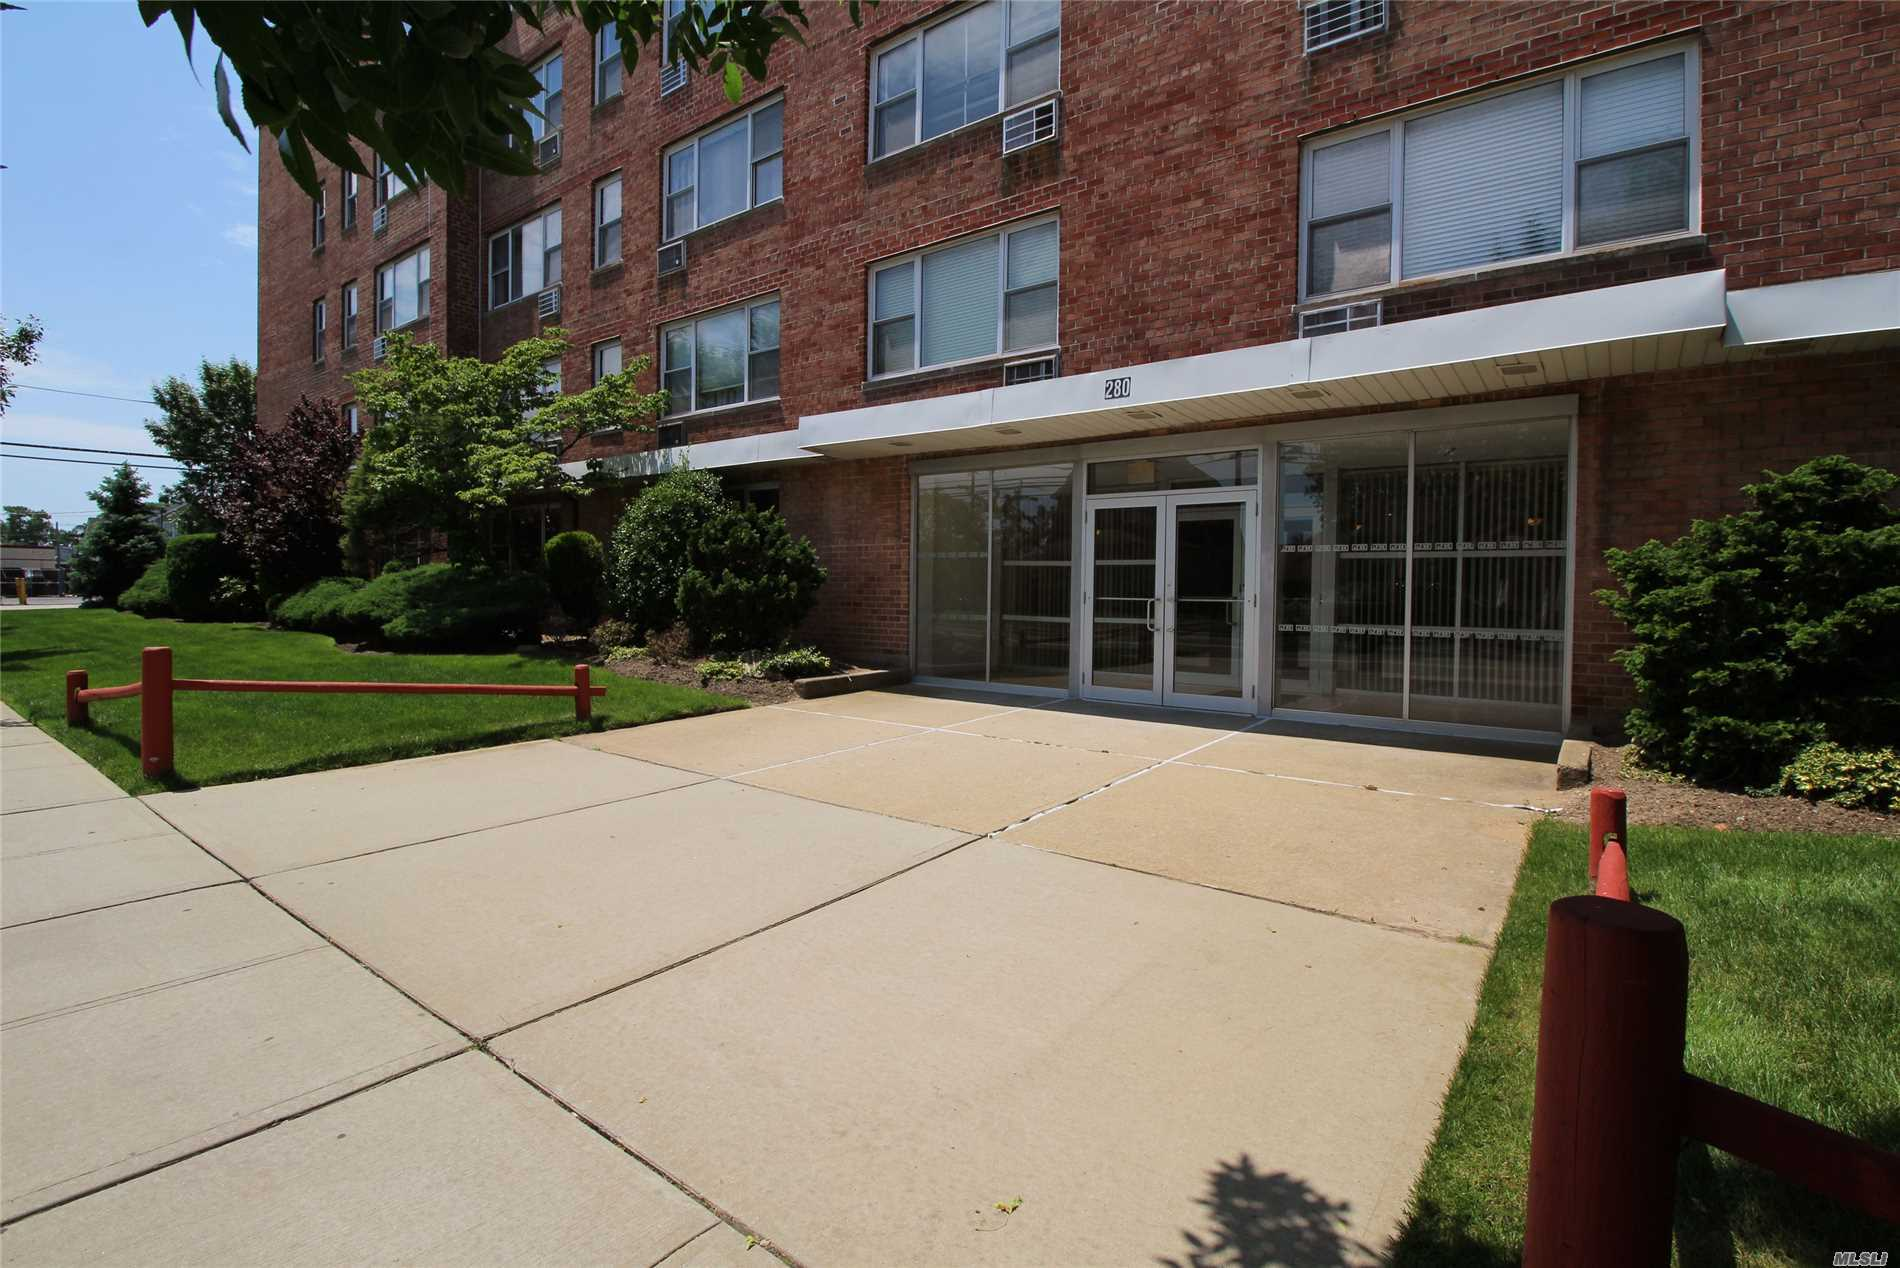 Great Opportunity To Own Rather Than Rent In A Well Maintained And Financially Secure Building. Unit Is On The Top Floor & Is A Corner Unit. Plenty Of Sunlight. No Pets Allowed And No Smoking Allowed. One Parking Spot Is Designated To Unit At No Charge. Parking Is On Site . Security Cameras In Parking Area And Every Floor. Washer And Dryer On Each Level. Conveniently Located To All. Make This Year The Year You Become An Owner! Maintenance Does Not Include Star Reduction. Currently $95 Per Mo